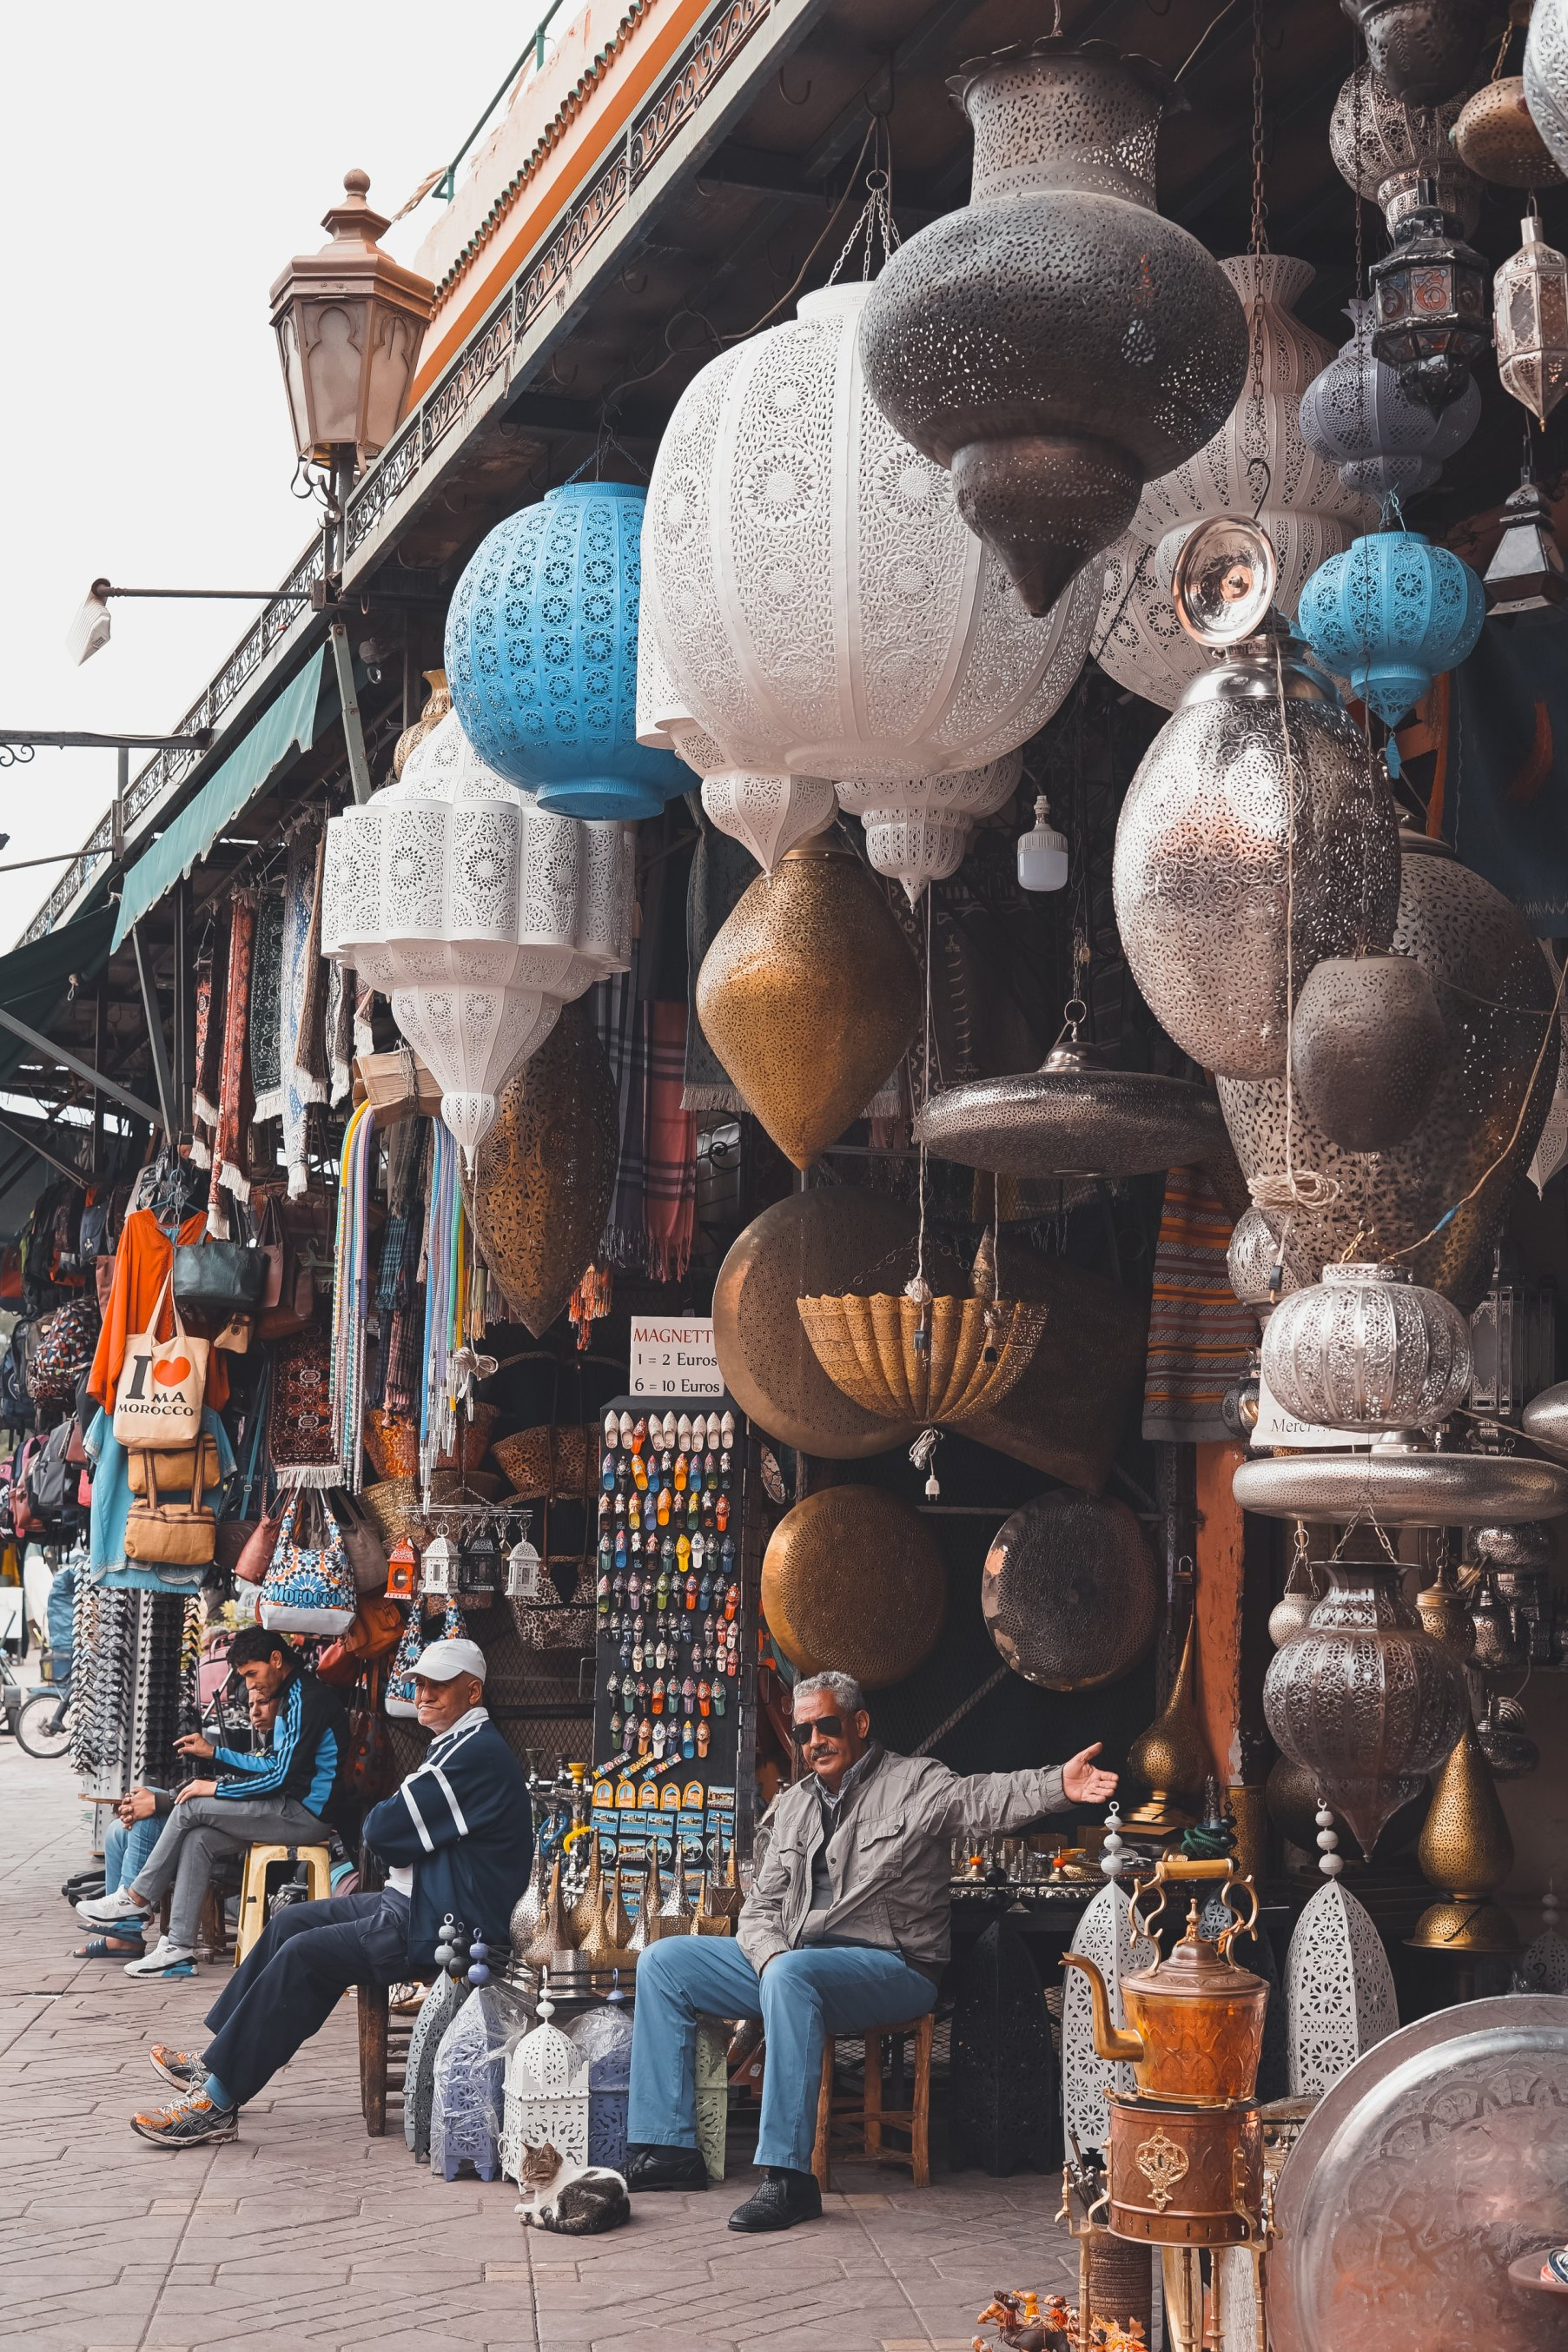 Lanterns sold at the souks of Marrakech Morocco